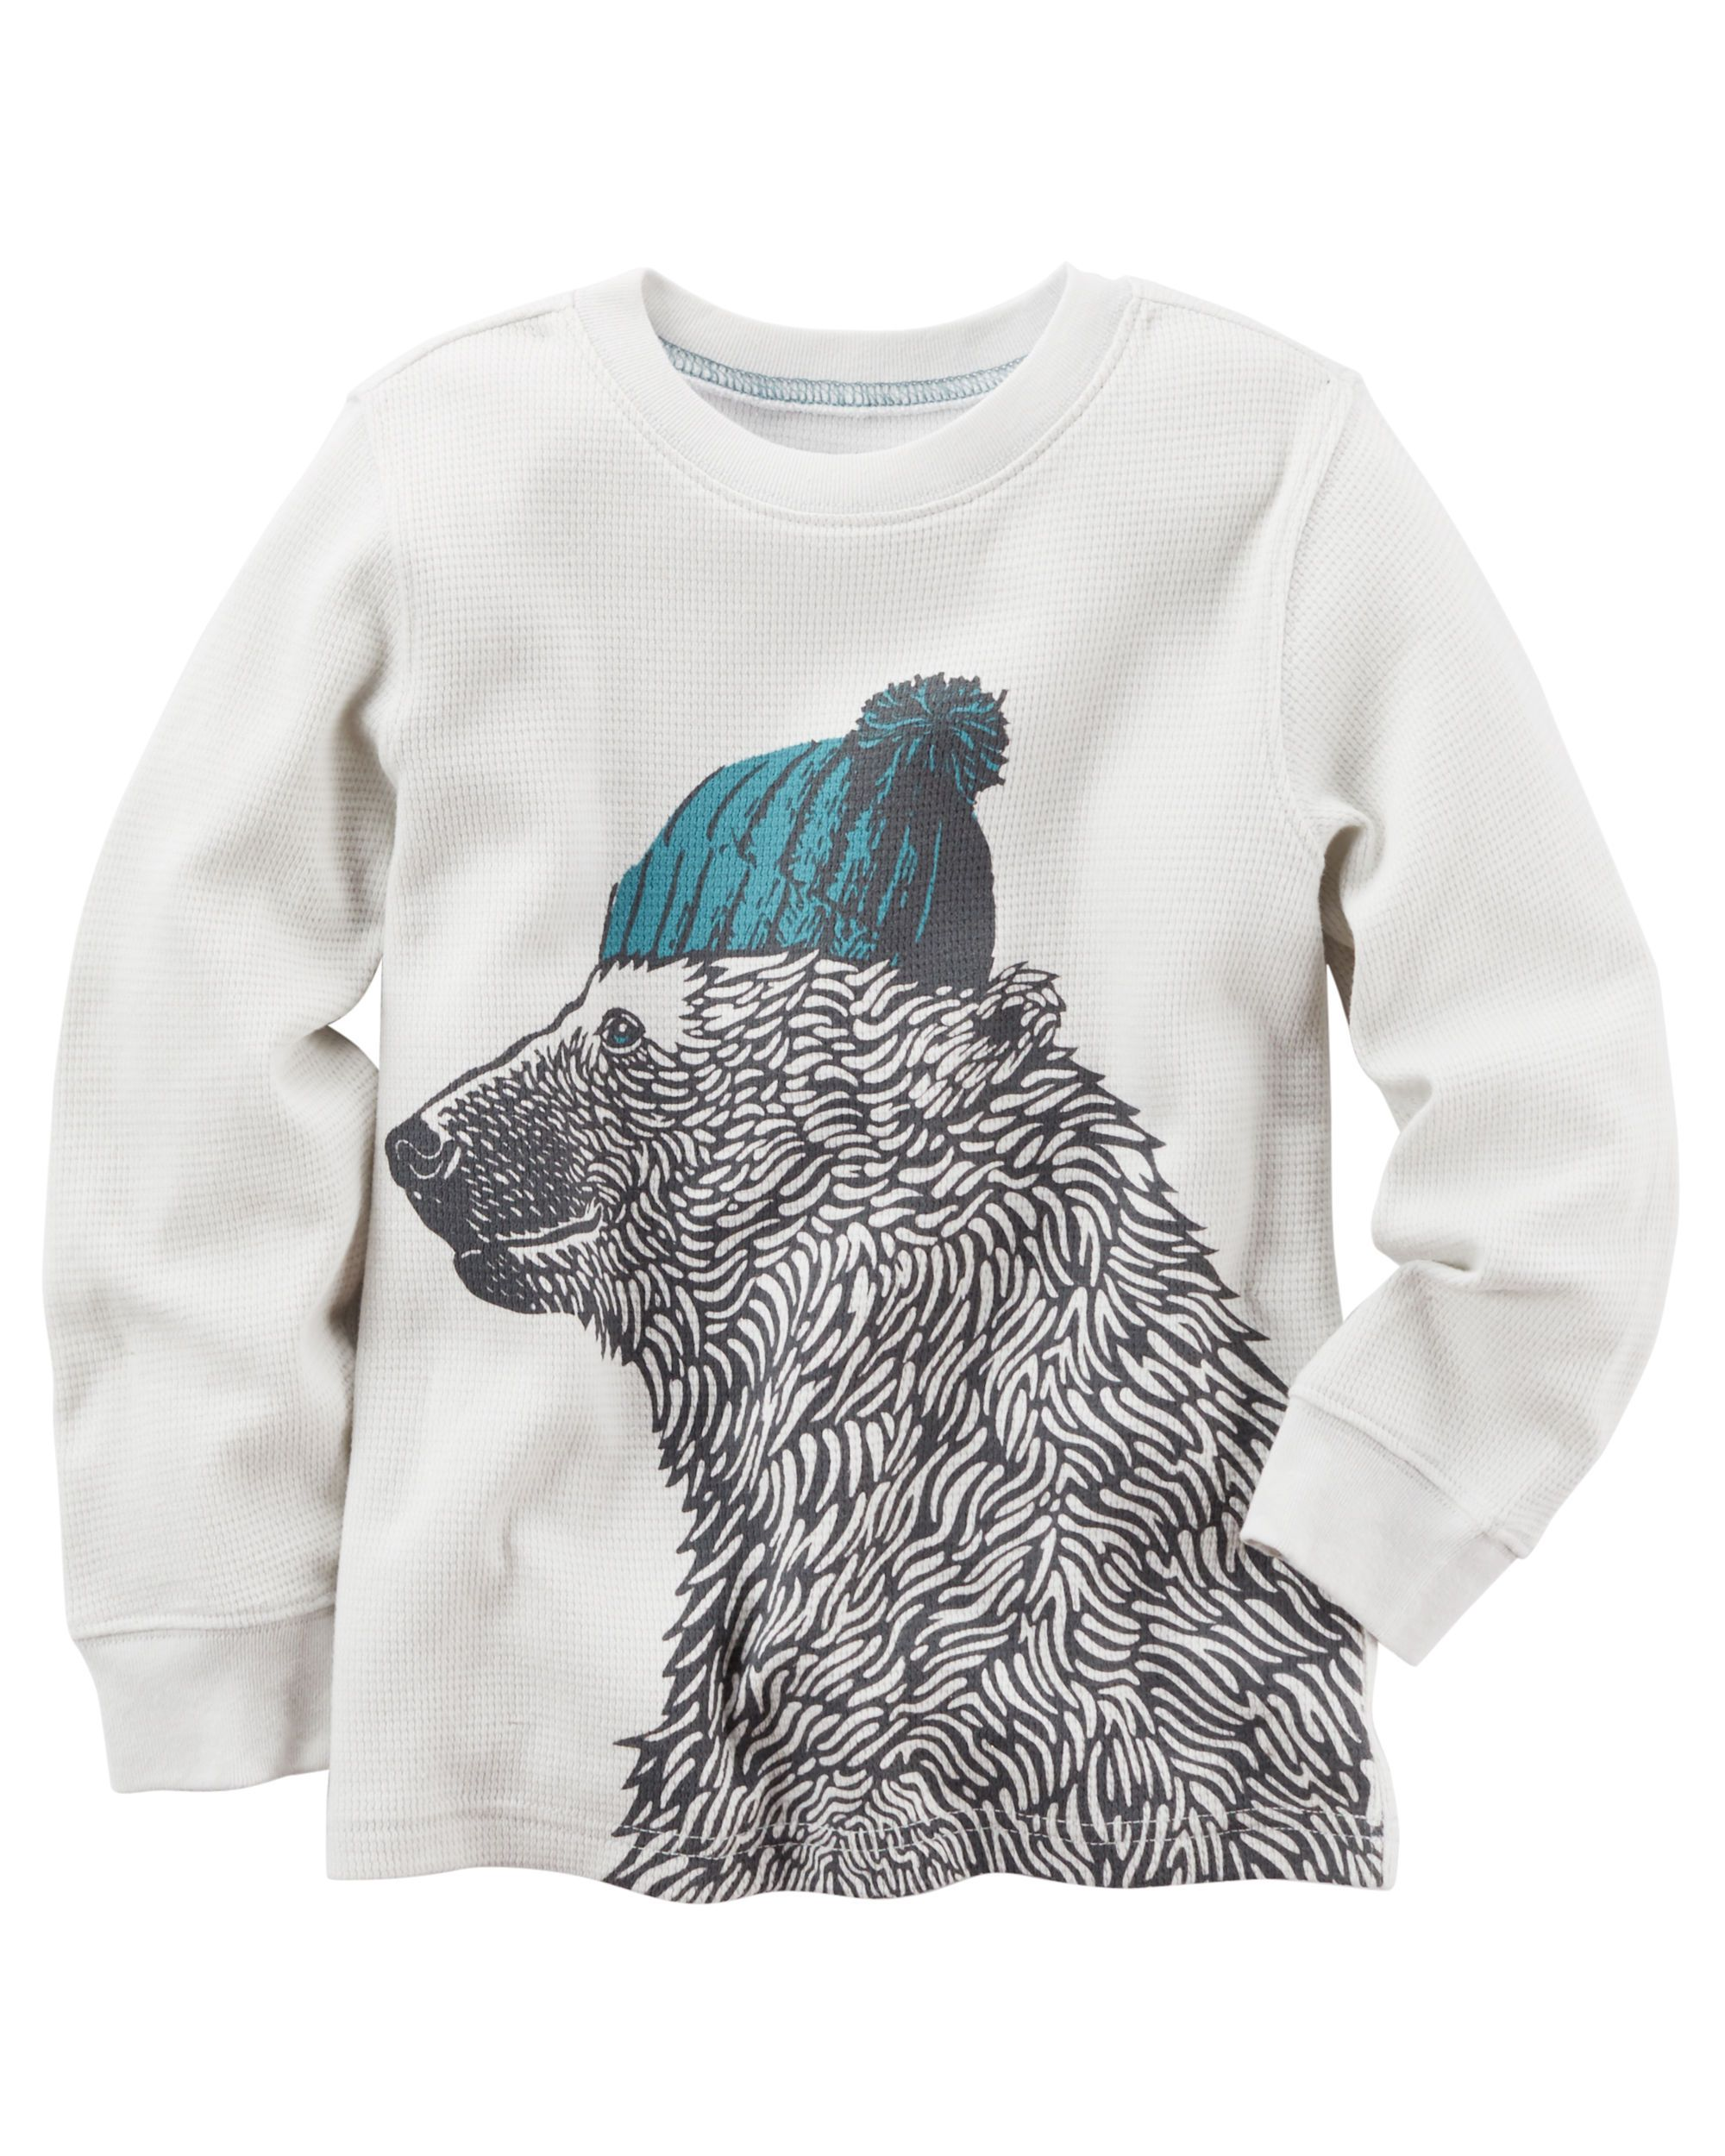 Long Sleeve Bear Graphic Tee Bear Graphic Toddler Boys And Babies